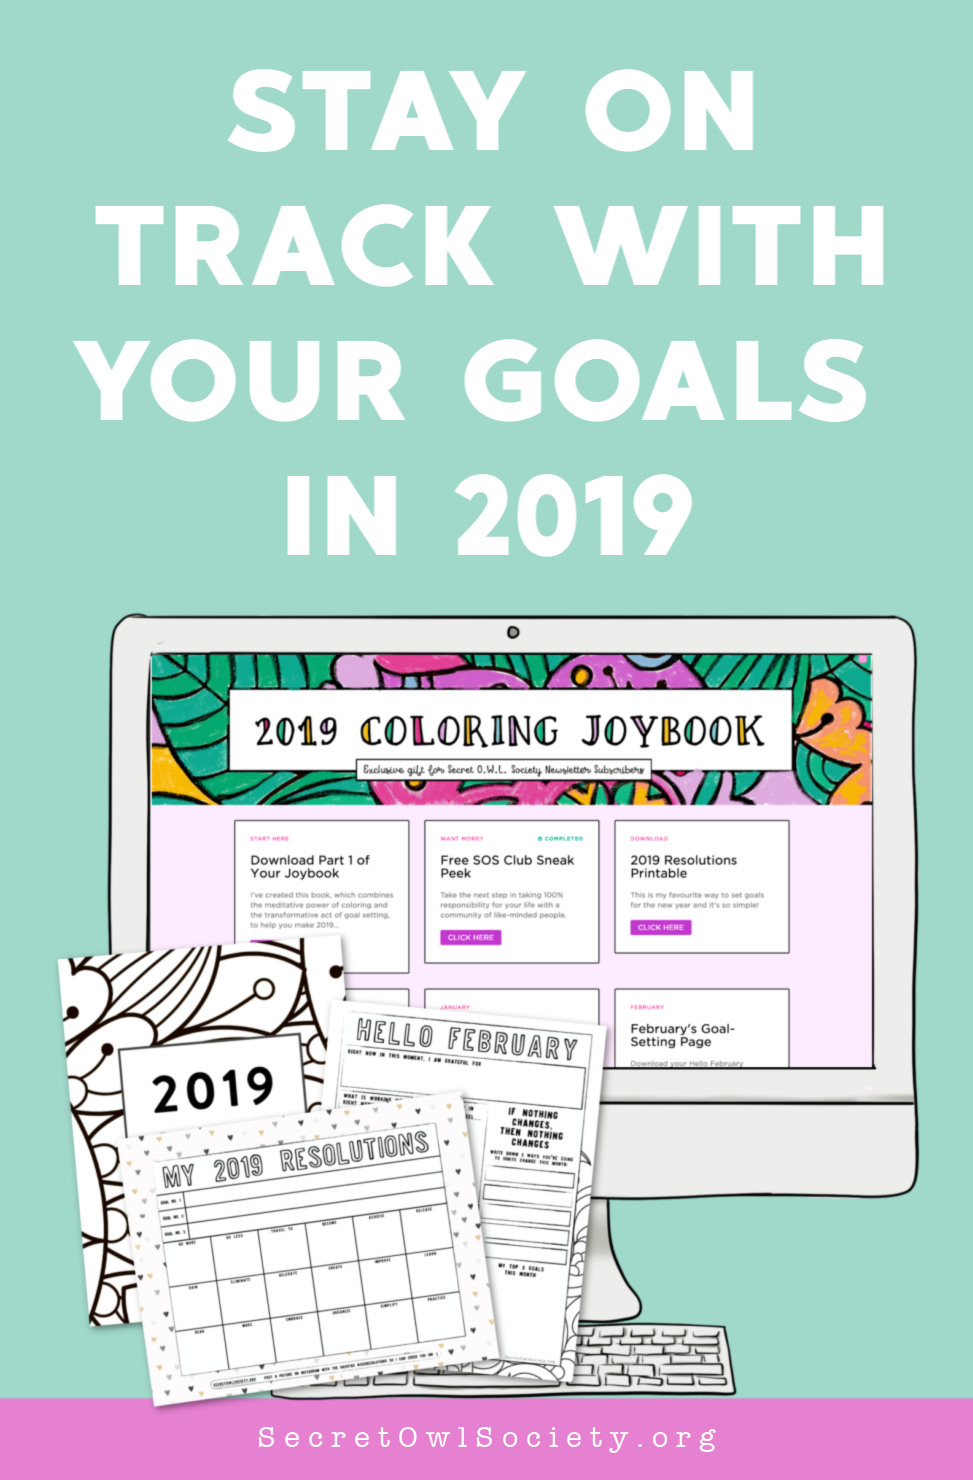 Stay on track with your goals in 2019!